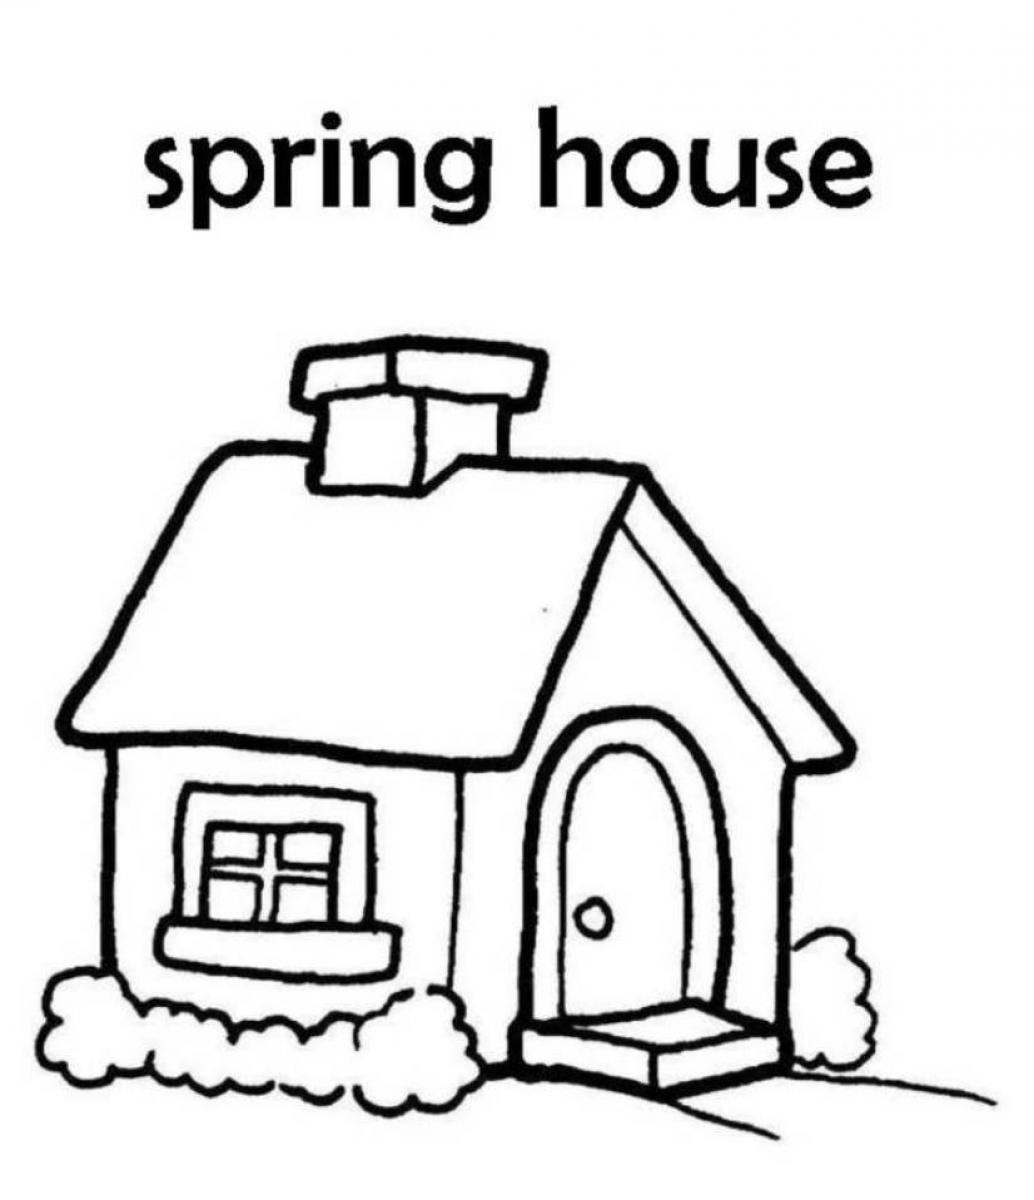 coloring sheets house 25 free printable haunted house coloring pages for kids house sheets coloring